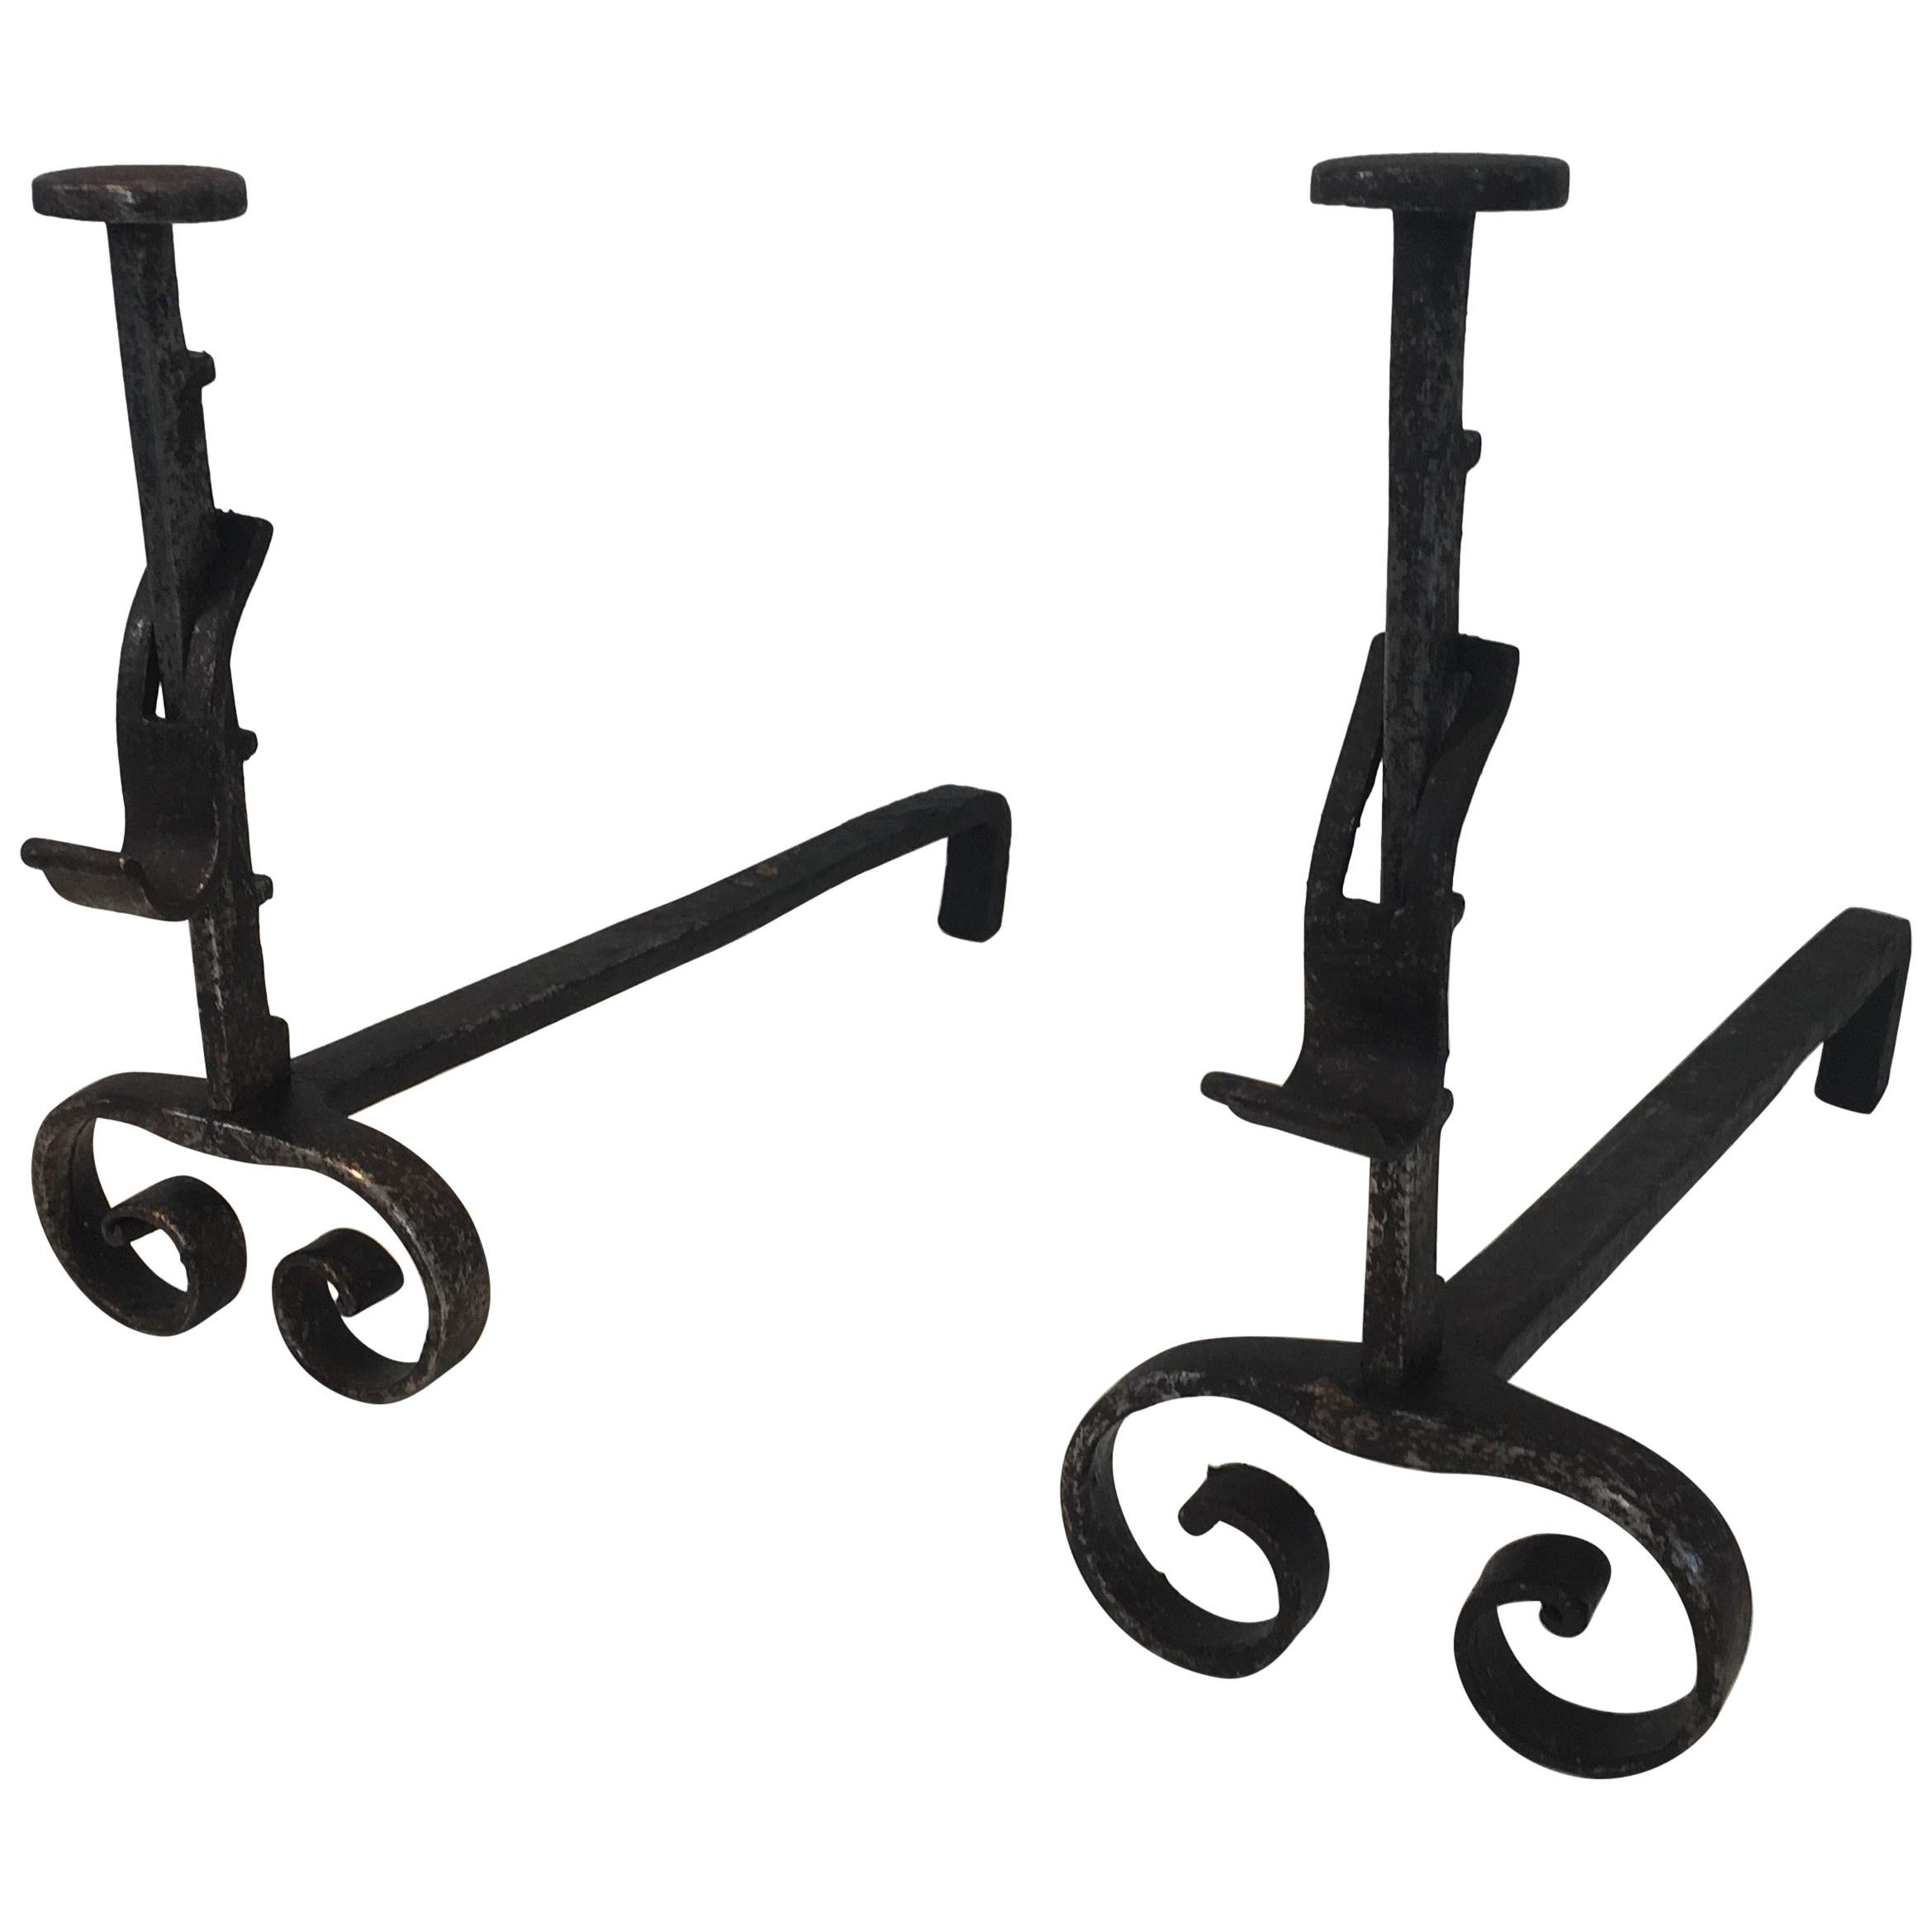 Pair of Forged Wrought Iron Andirons, French, 19th Century